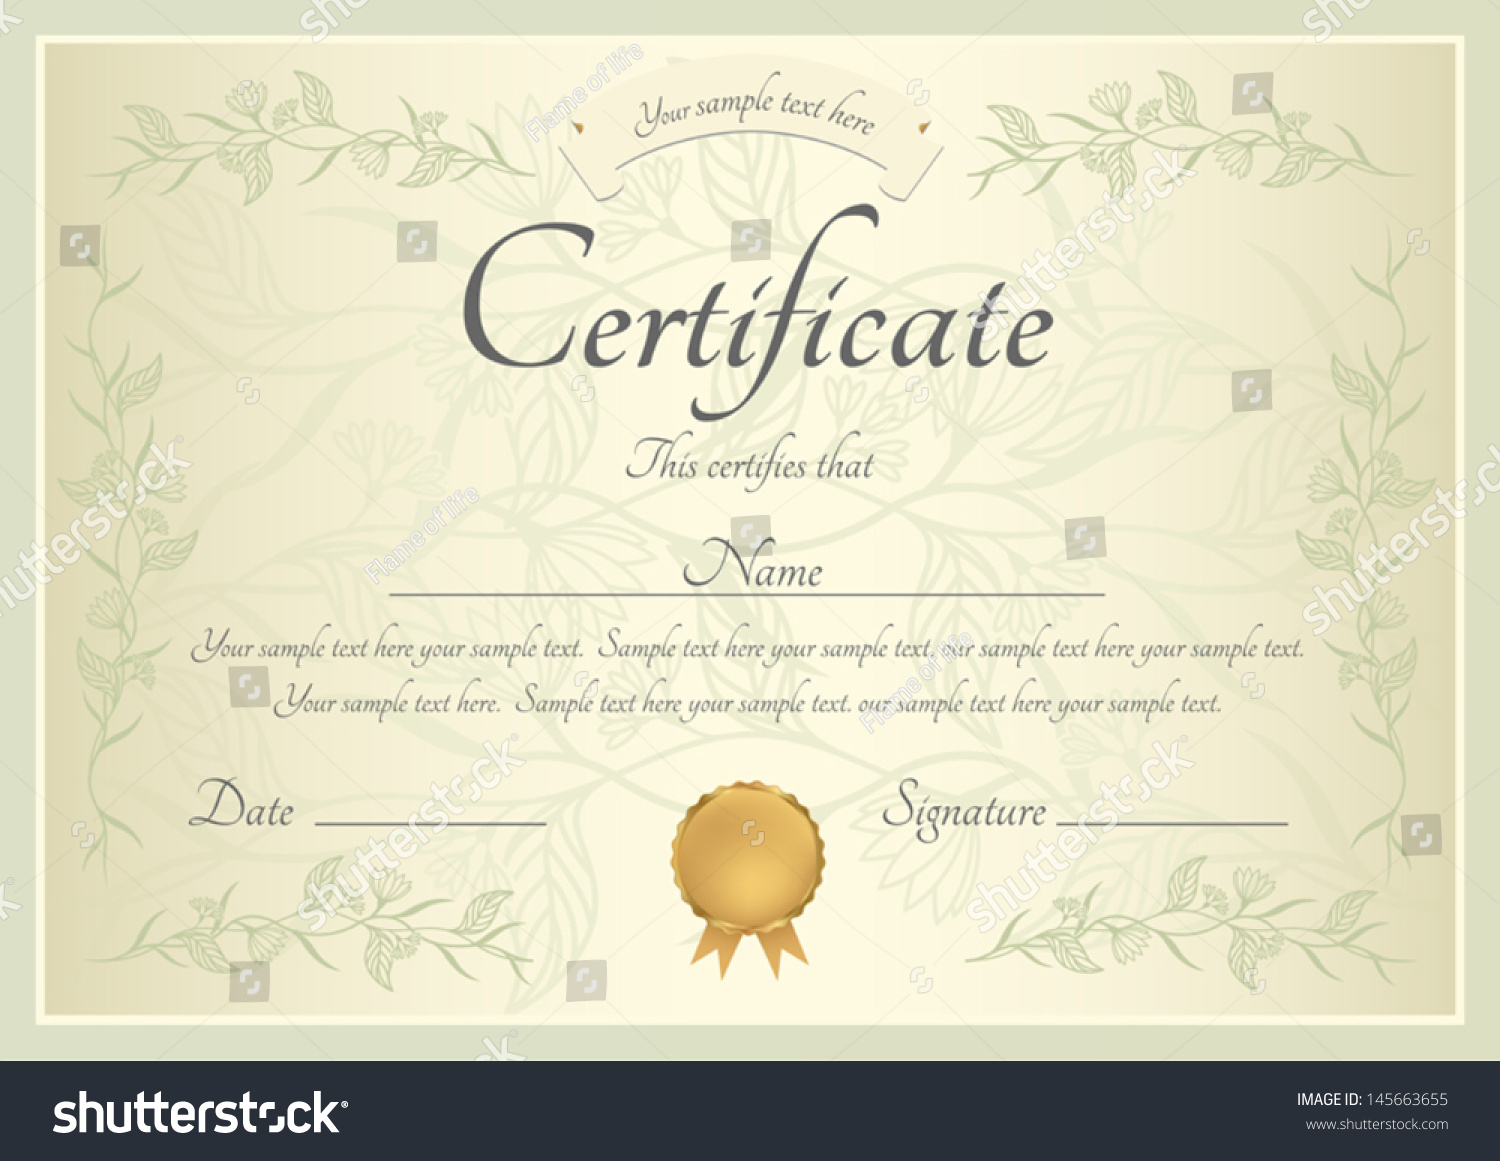 Certificate Completion Template Sample Background Floral